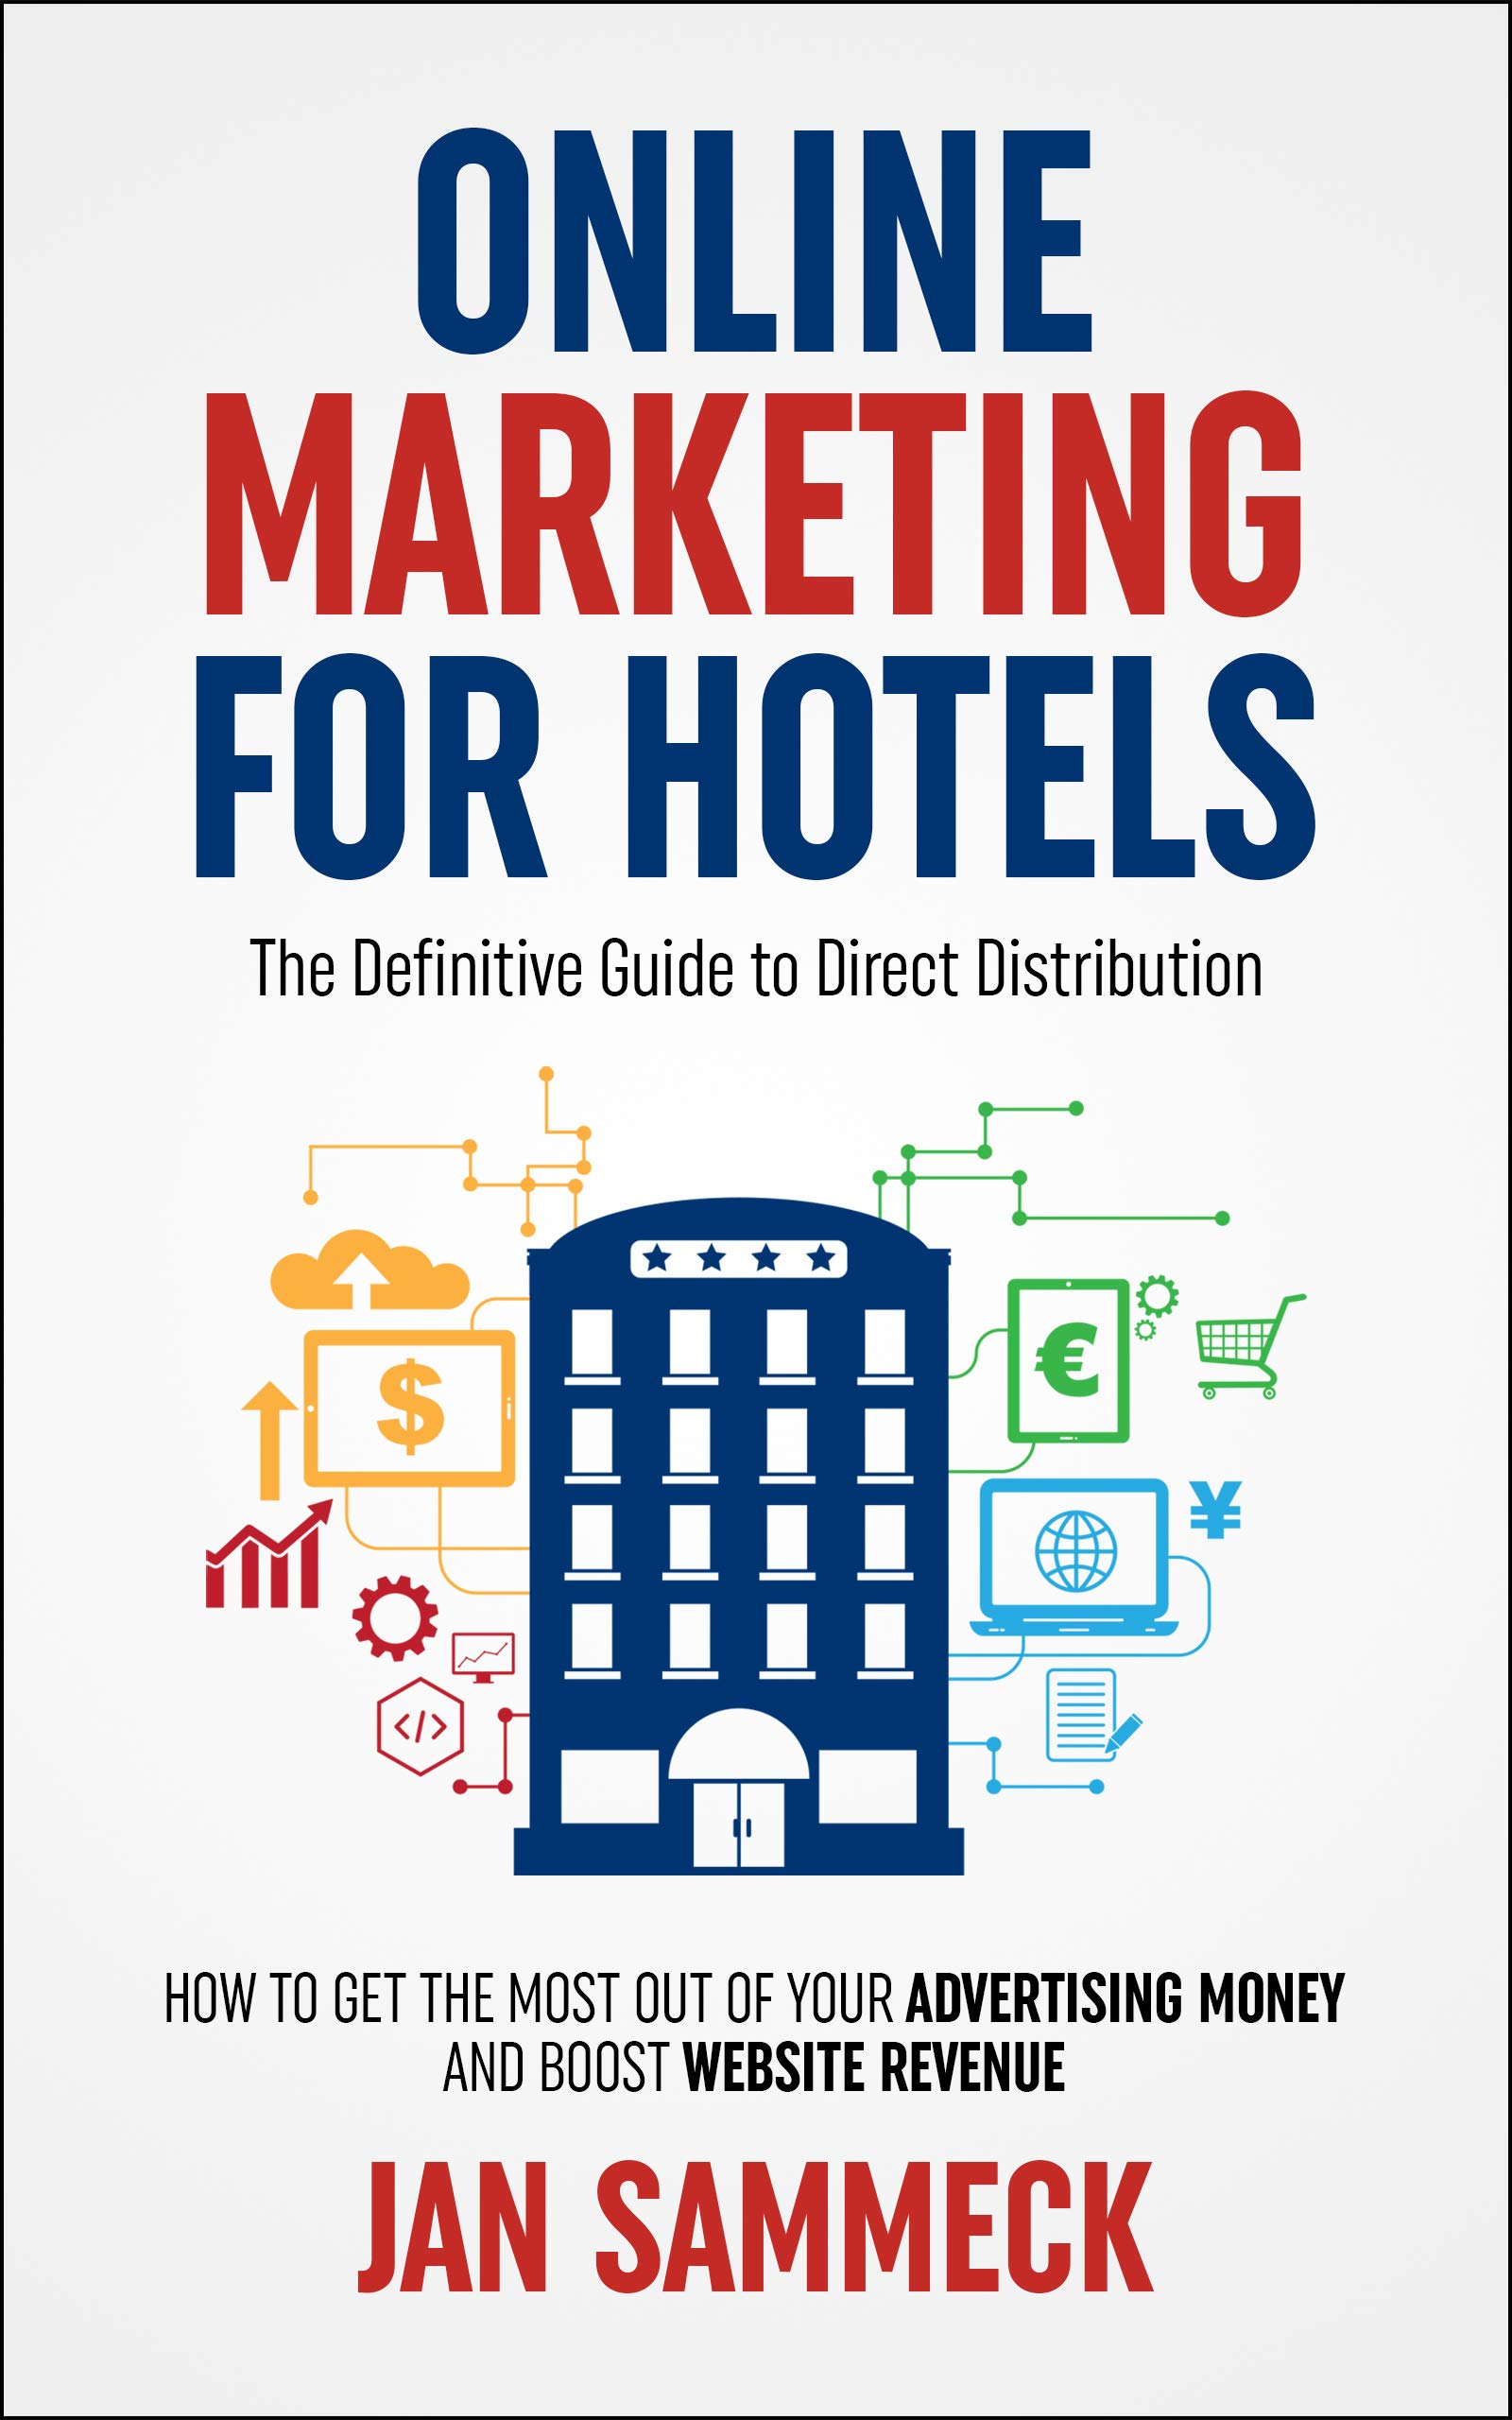 Online Marketing for Hotels: The Definitive Guide to Direct Distribution